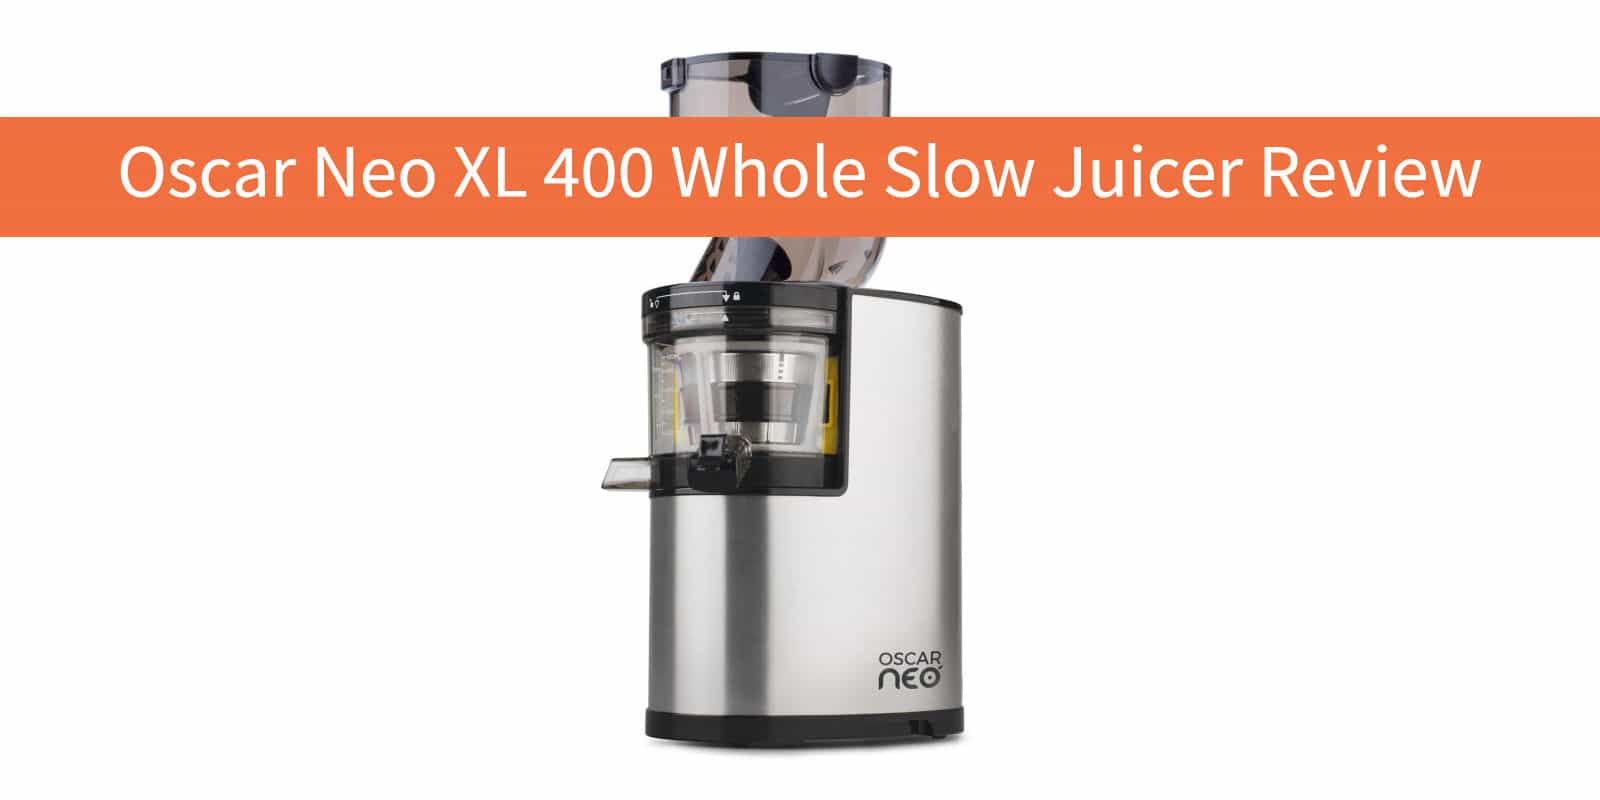 Oscar Neo Xl Whole Slow Juicer : Oscar Neo XL 400 Whole Slow Juicer Review vegByte